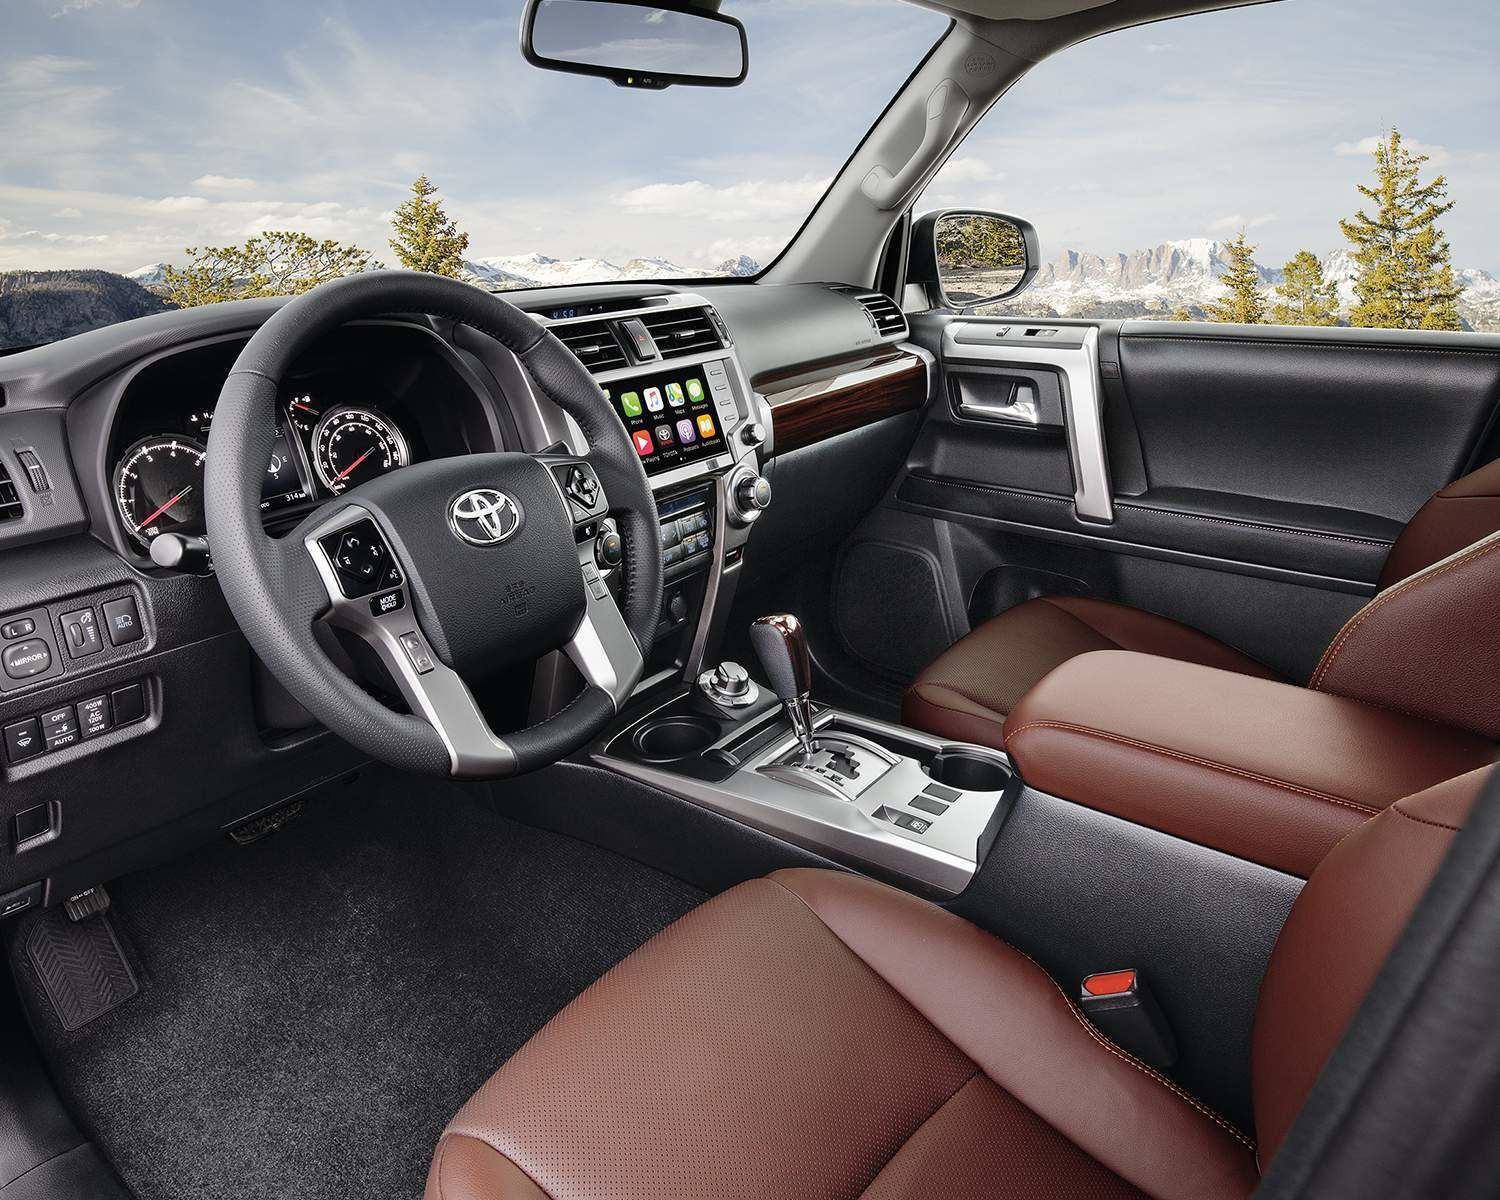 2020 4Runner Interior - Woodbridge Toyota